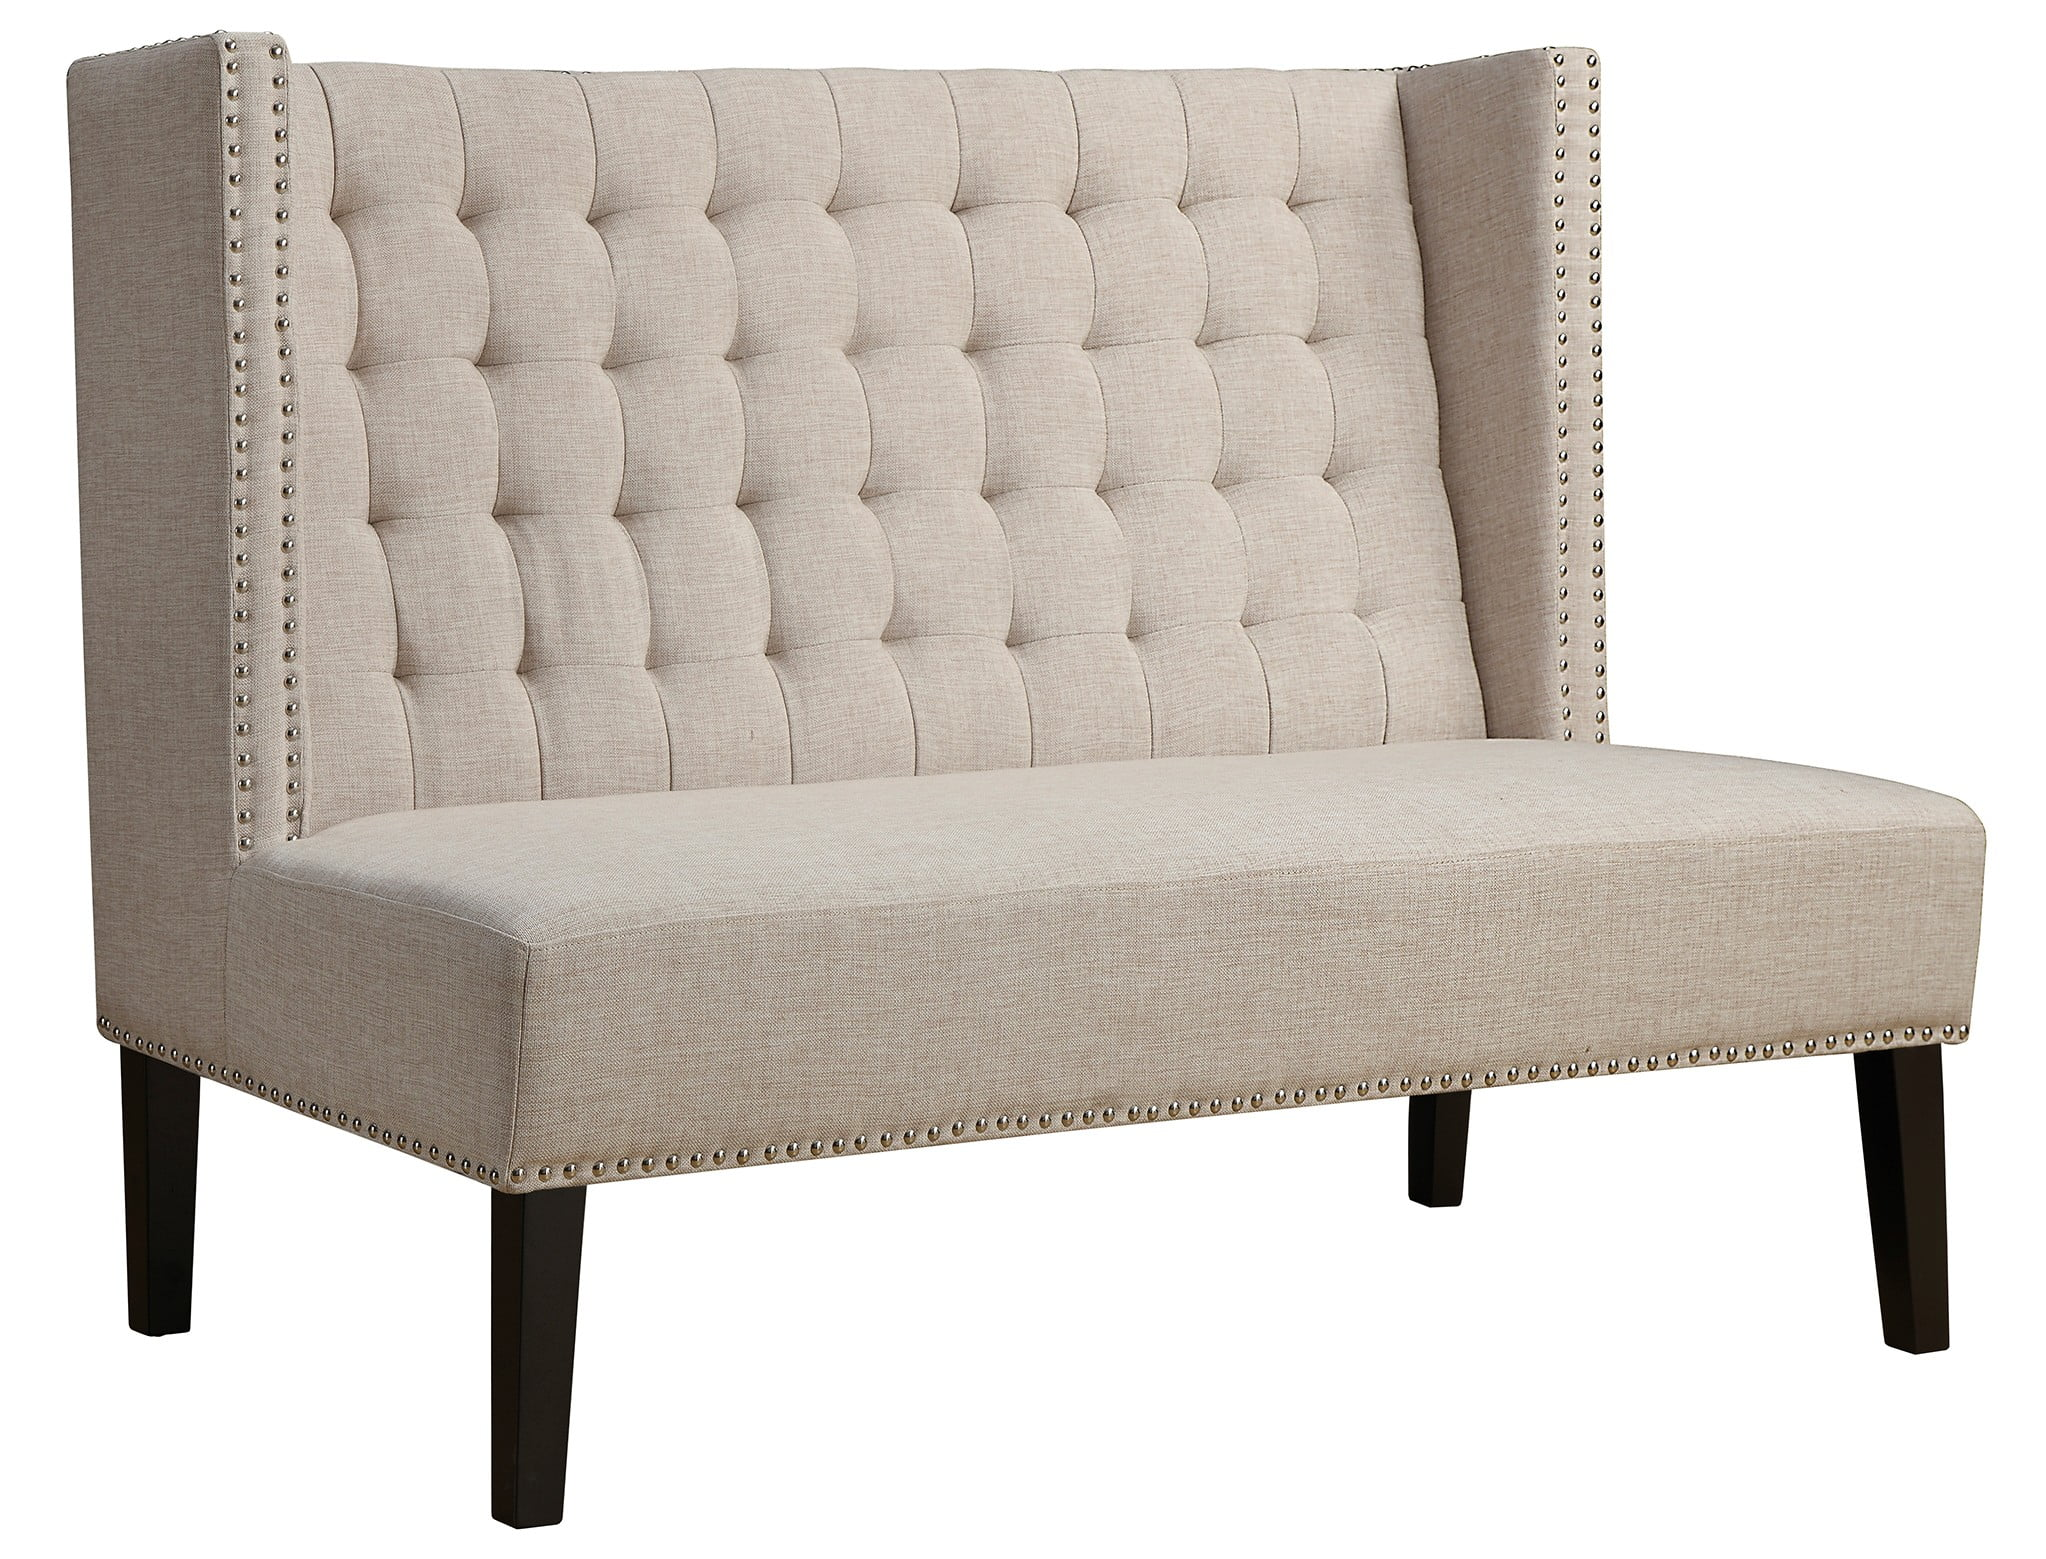 halifax beige linen banquette bench from tov tov 63114 beige coleman furniture. Black Bedroom Furniture Sets. Home Design Ideas